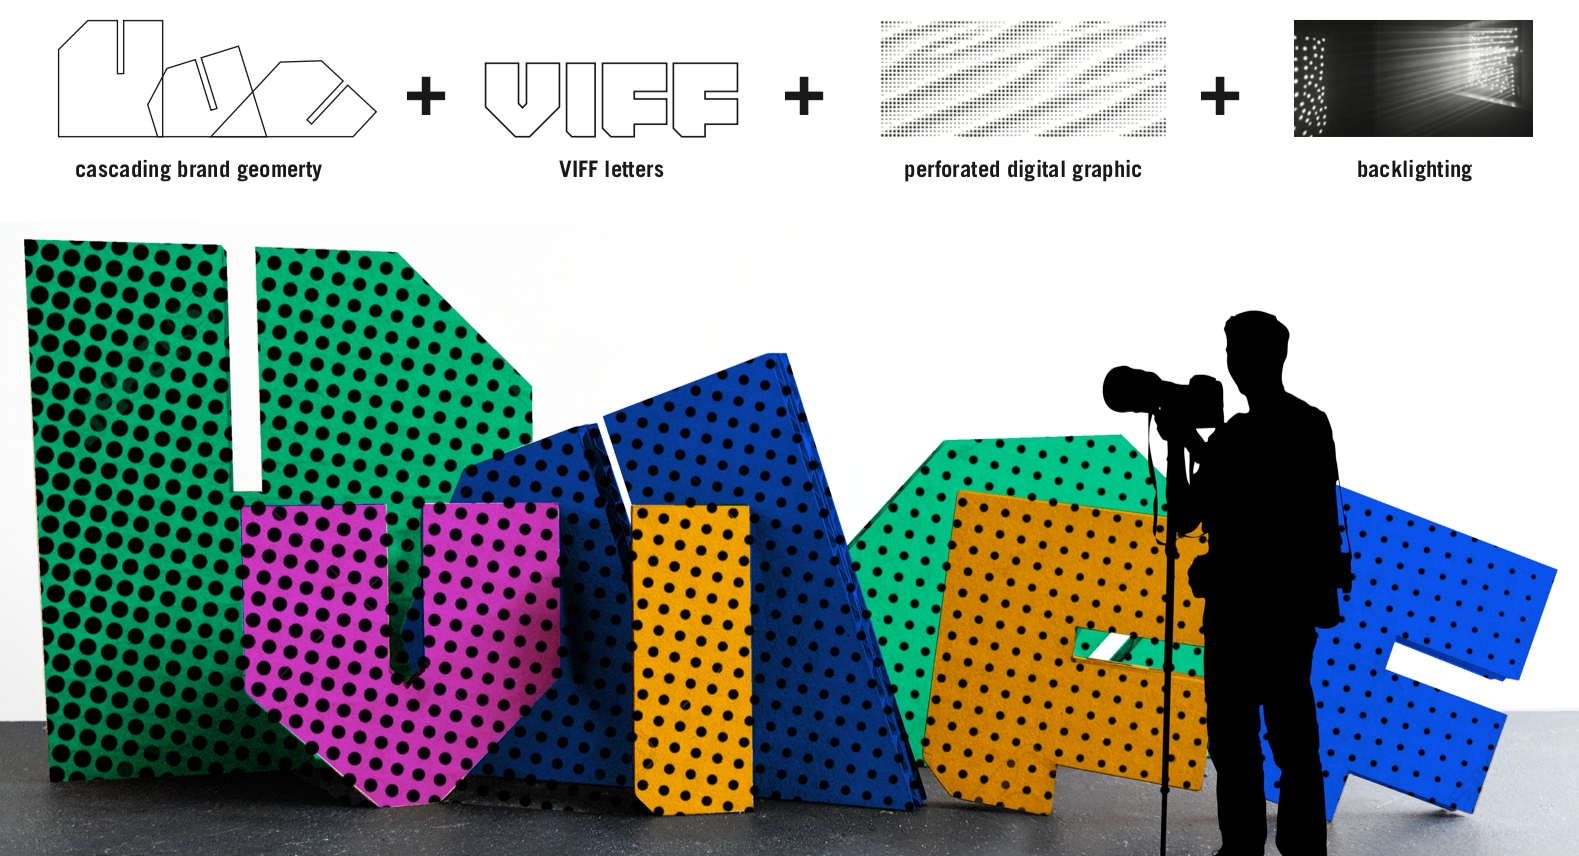 The installation brought together several of the brand themes and elements. At the core, it's a series of larger-than-life sized shapes reflecting the VIFF logo and brand identity. These huge shapes were perforated, in keeping with this year's pop-art theme, with a custom-scripted digital graphic.